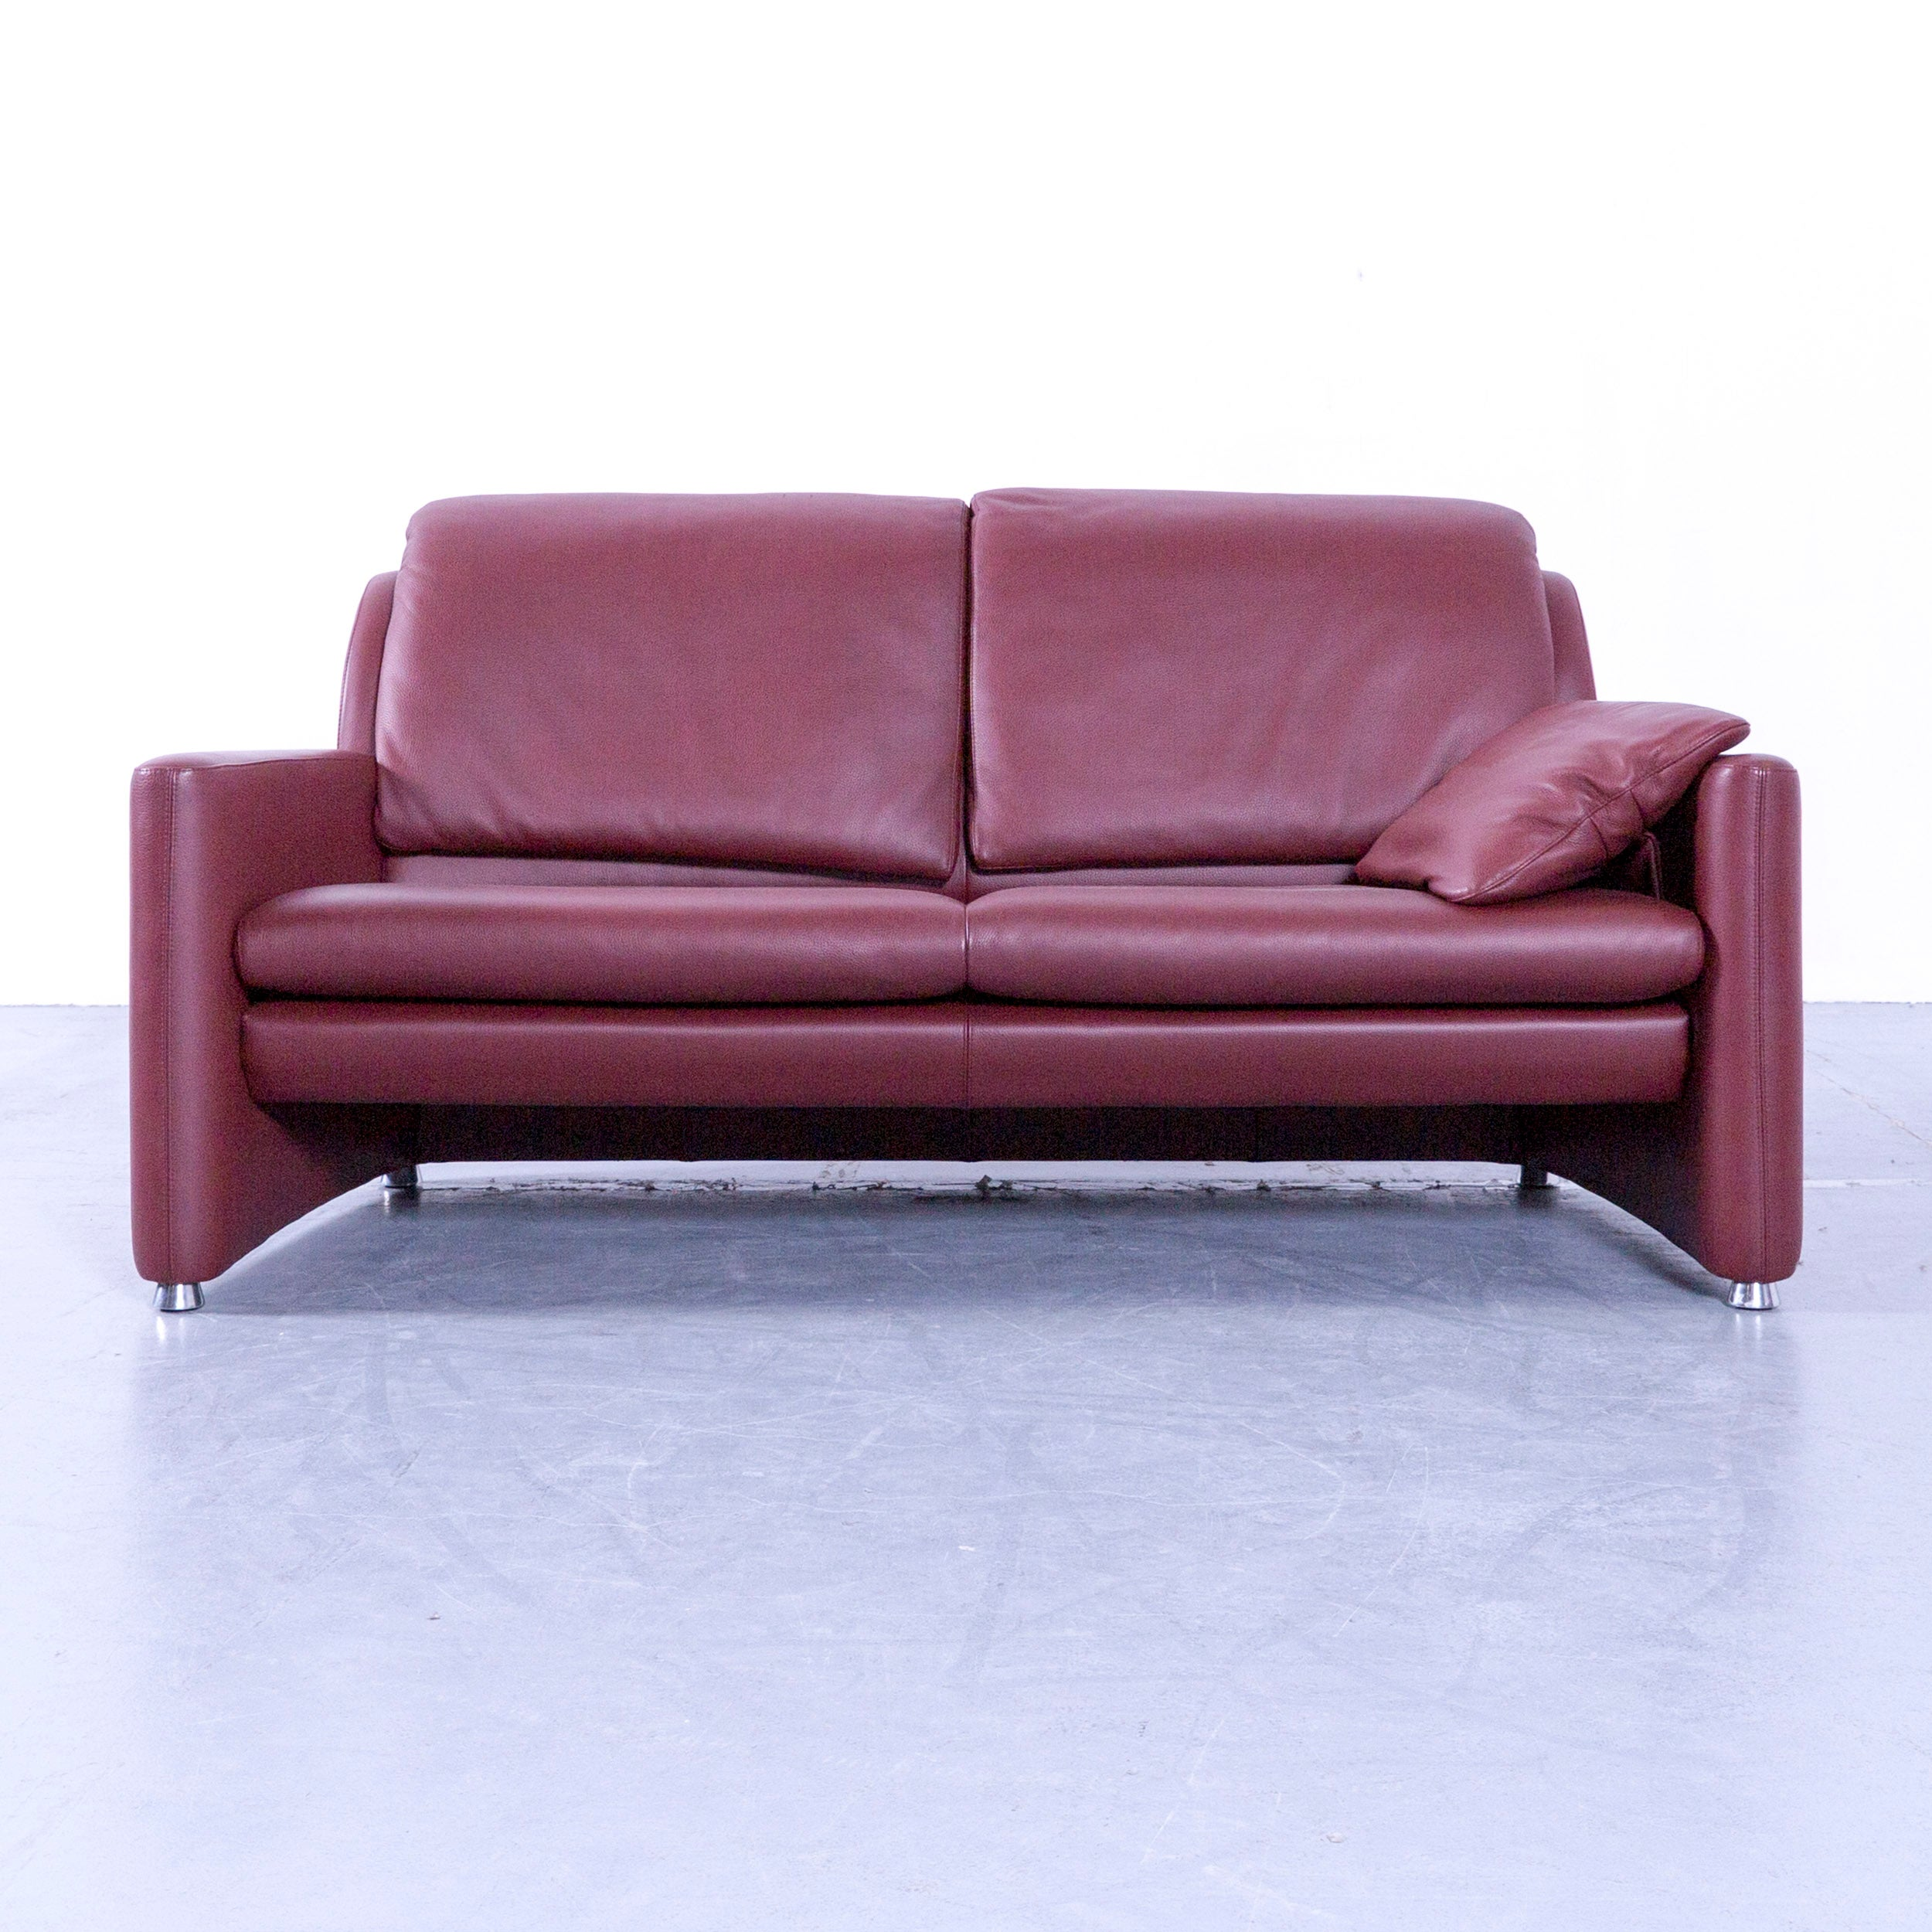 Leolux Fidamigo Designer Leather Sofa Red Two Seat Function Couch at